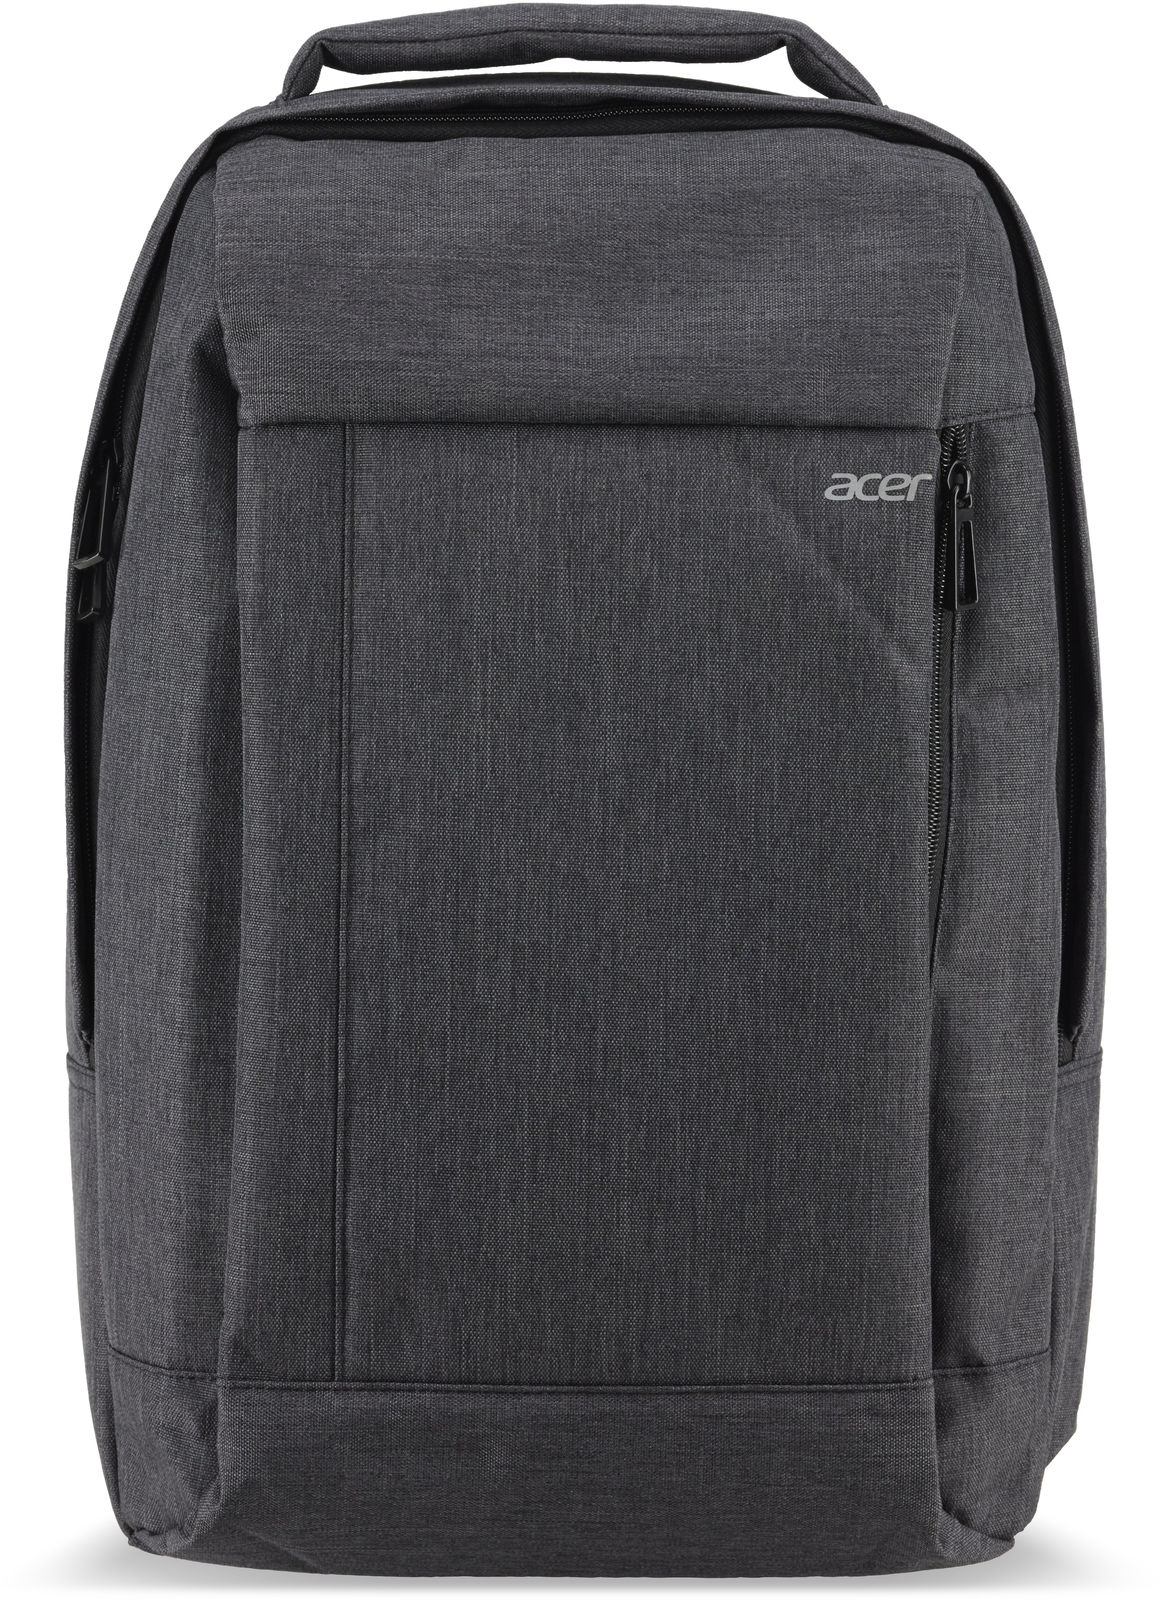 "Acer ACER BACKPACK 15.6"" TWO-TONE GREY ABG740 NP.BAG1A.278 - eet01"